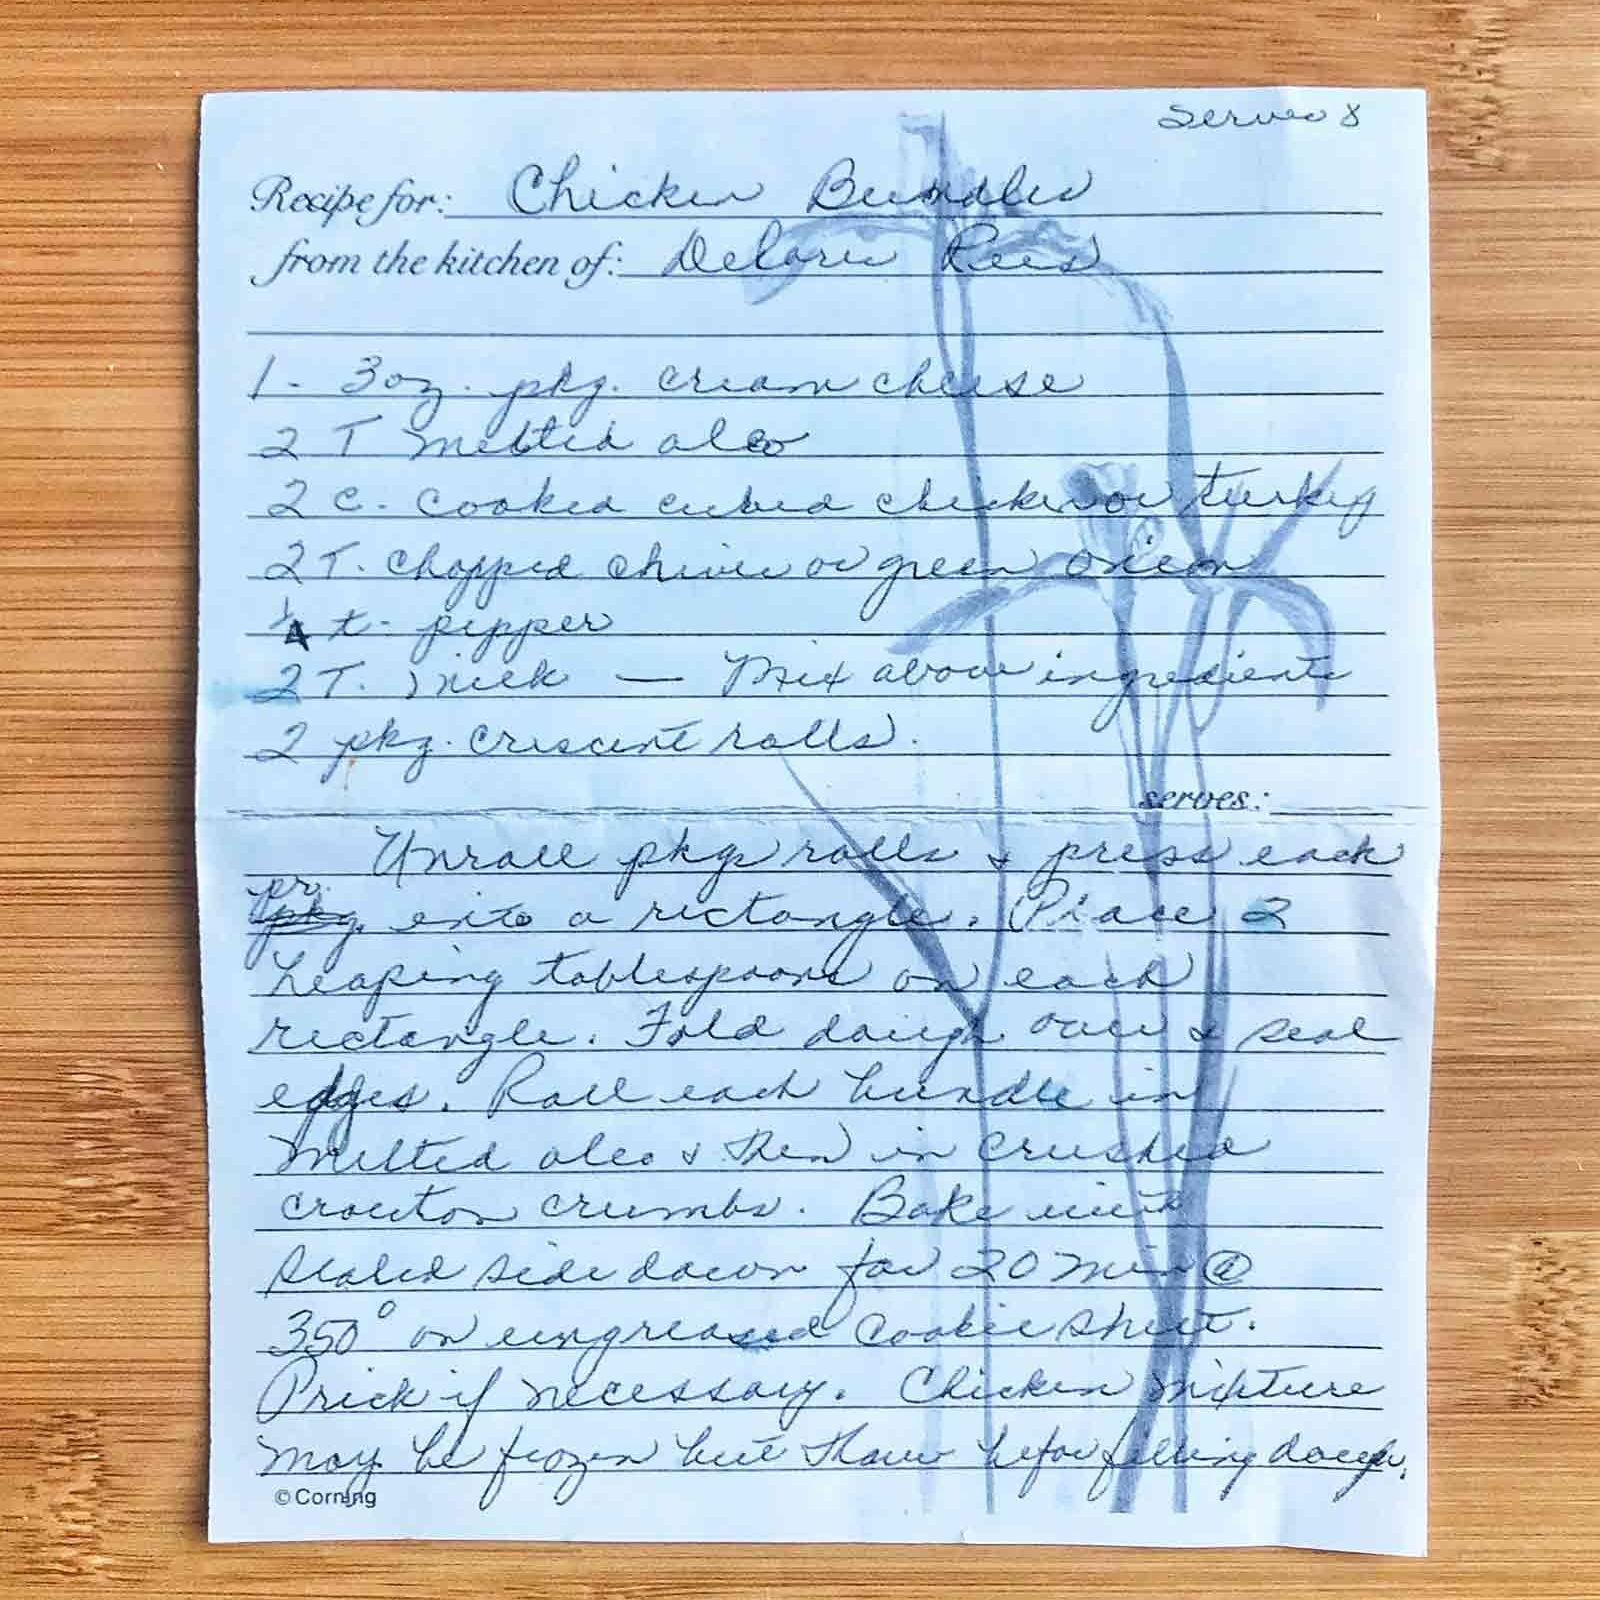 family lore - This is the page from grandma Ruth's recipe collection.